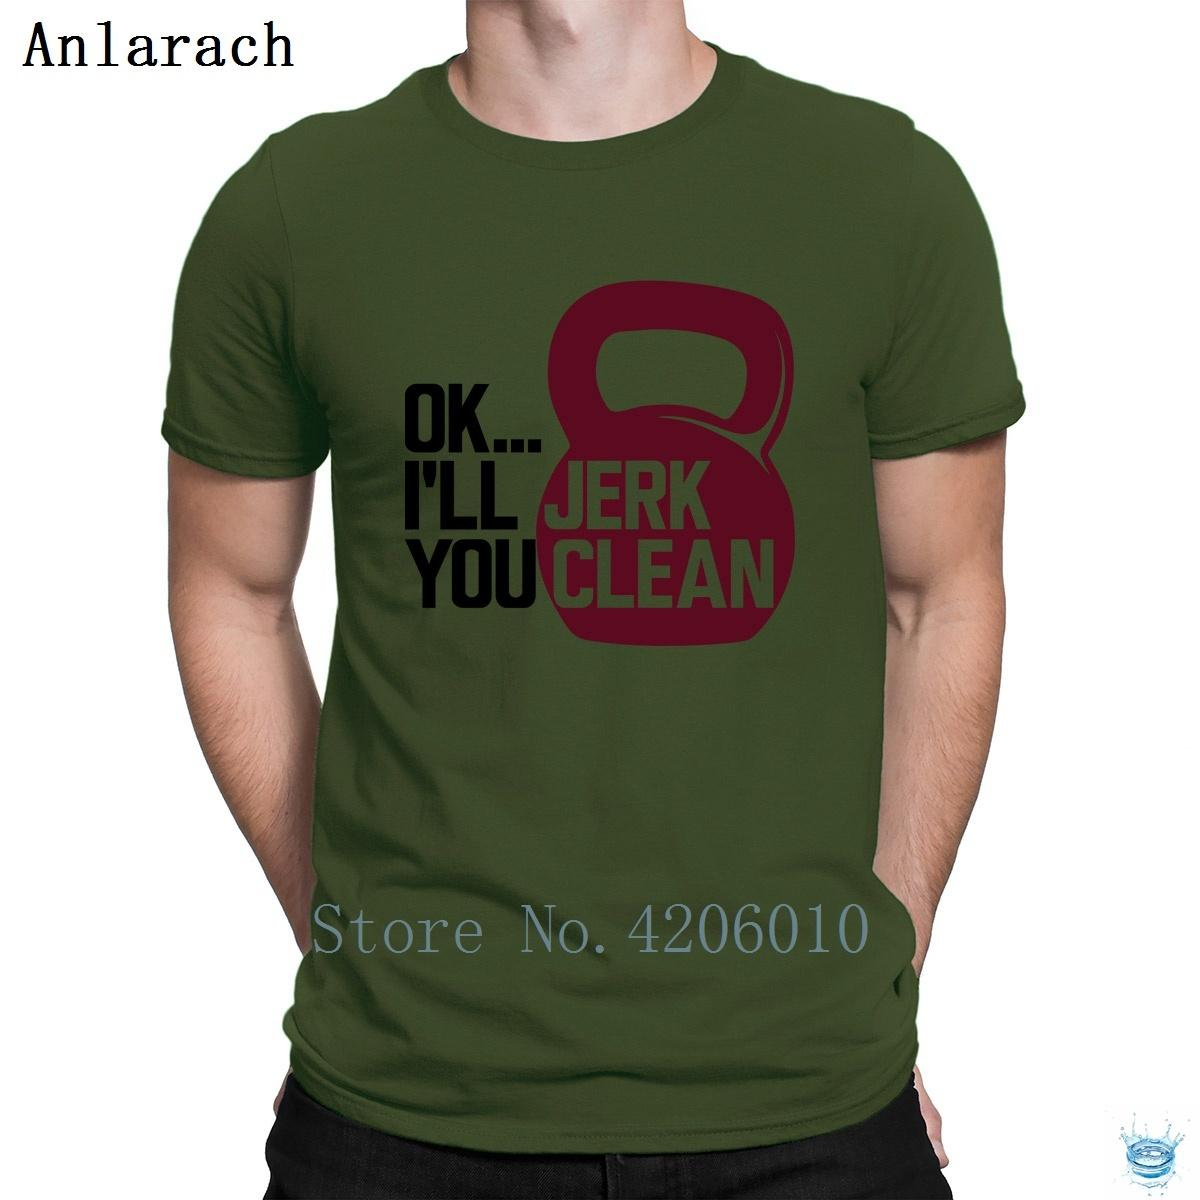 Jerk You Clean Tshirt Websites Printing Cheap Letters T Shirt For